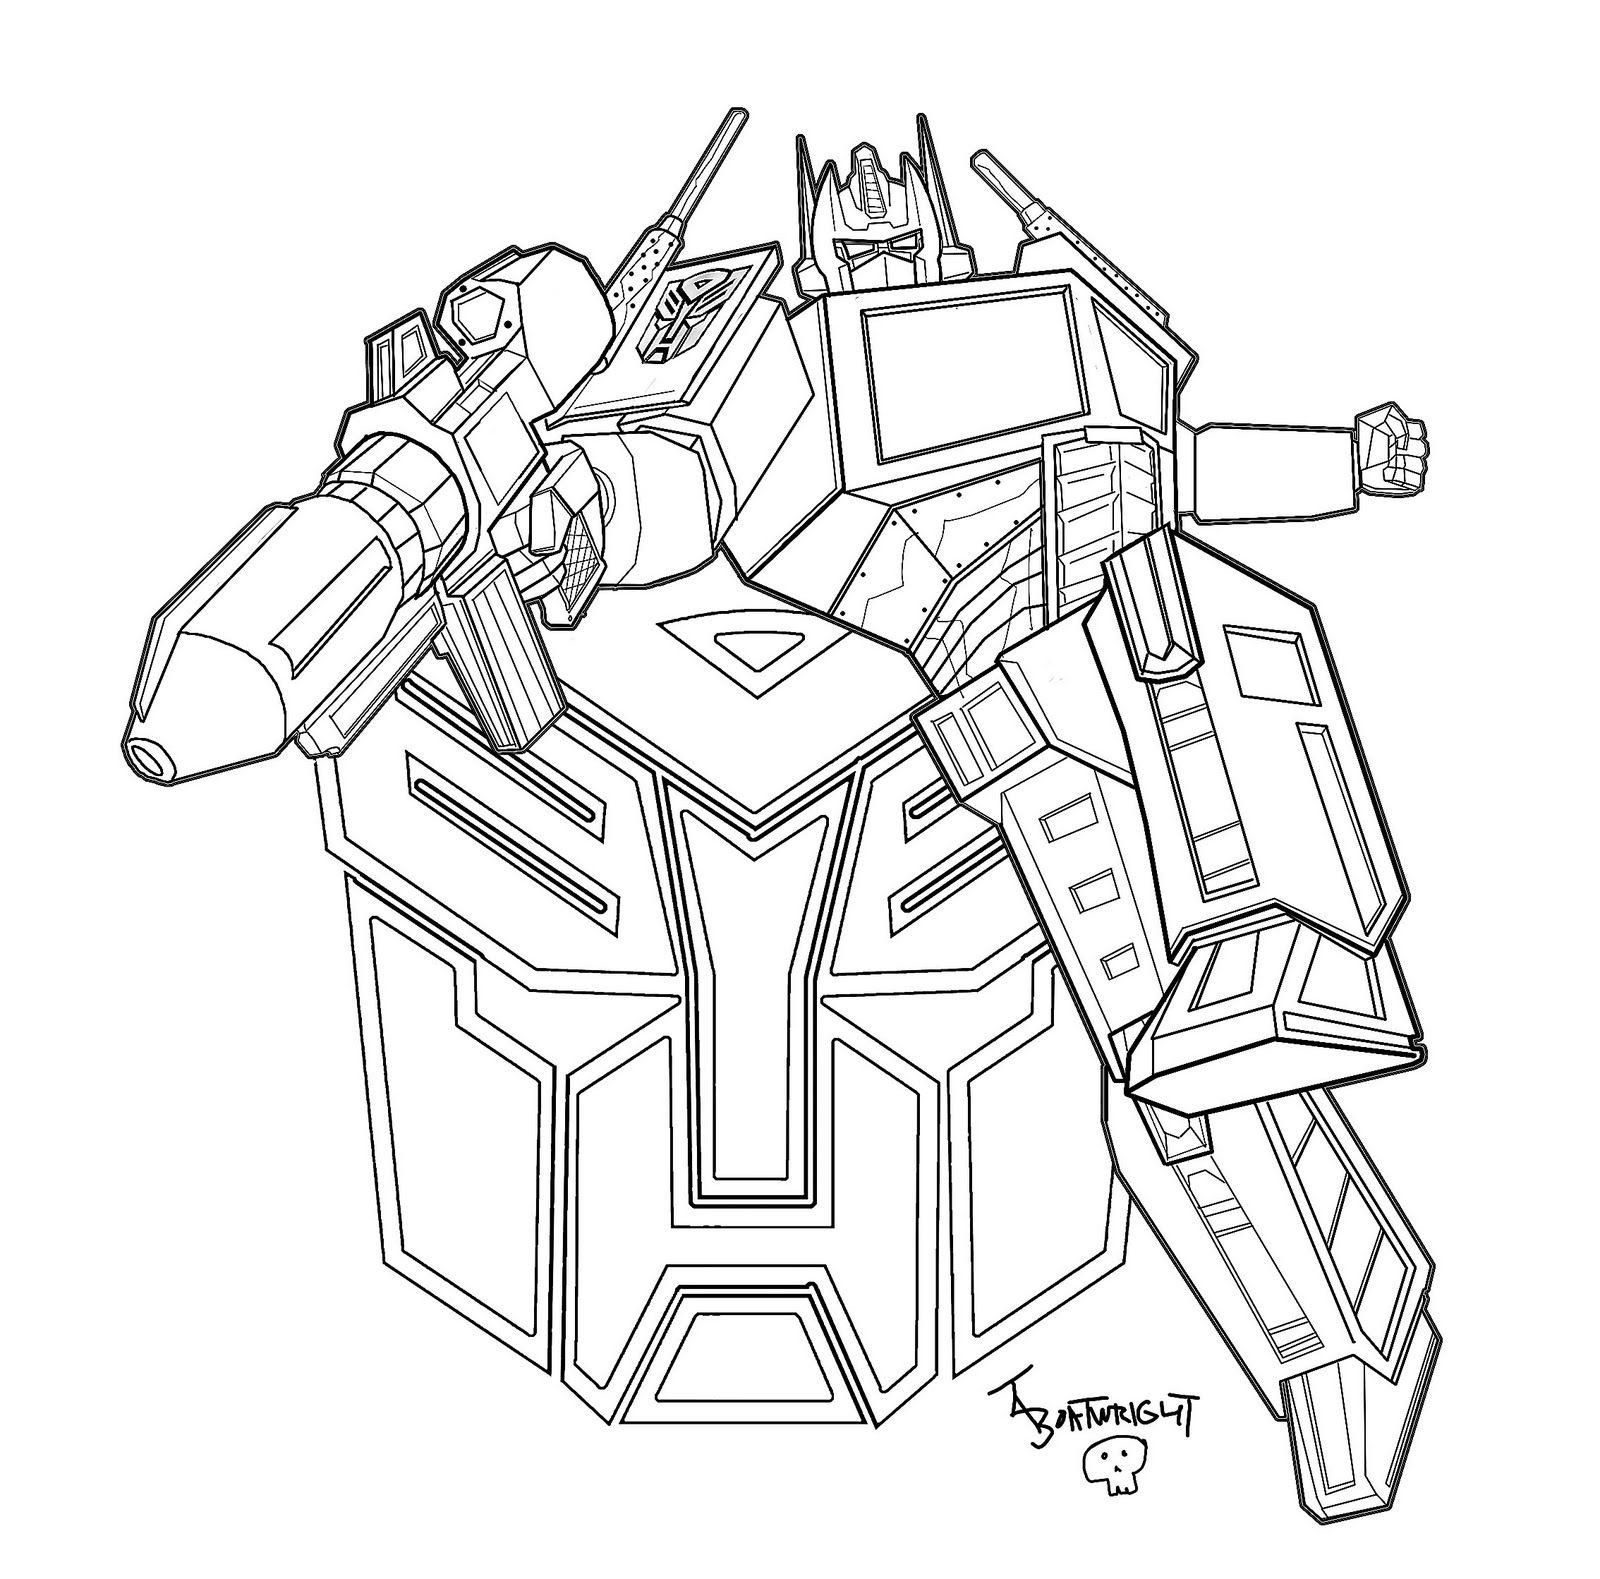 Transformers Printable Coloring Pages Transformer Coloring Pages Optimus Prime Pic Transformers Coloring Pages Disney Coloring Pages Cartoon Coloring Pages